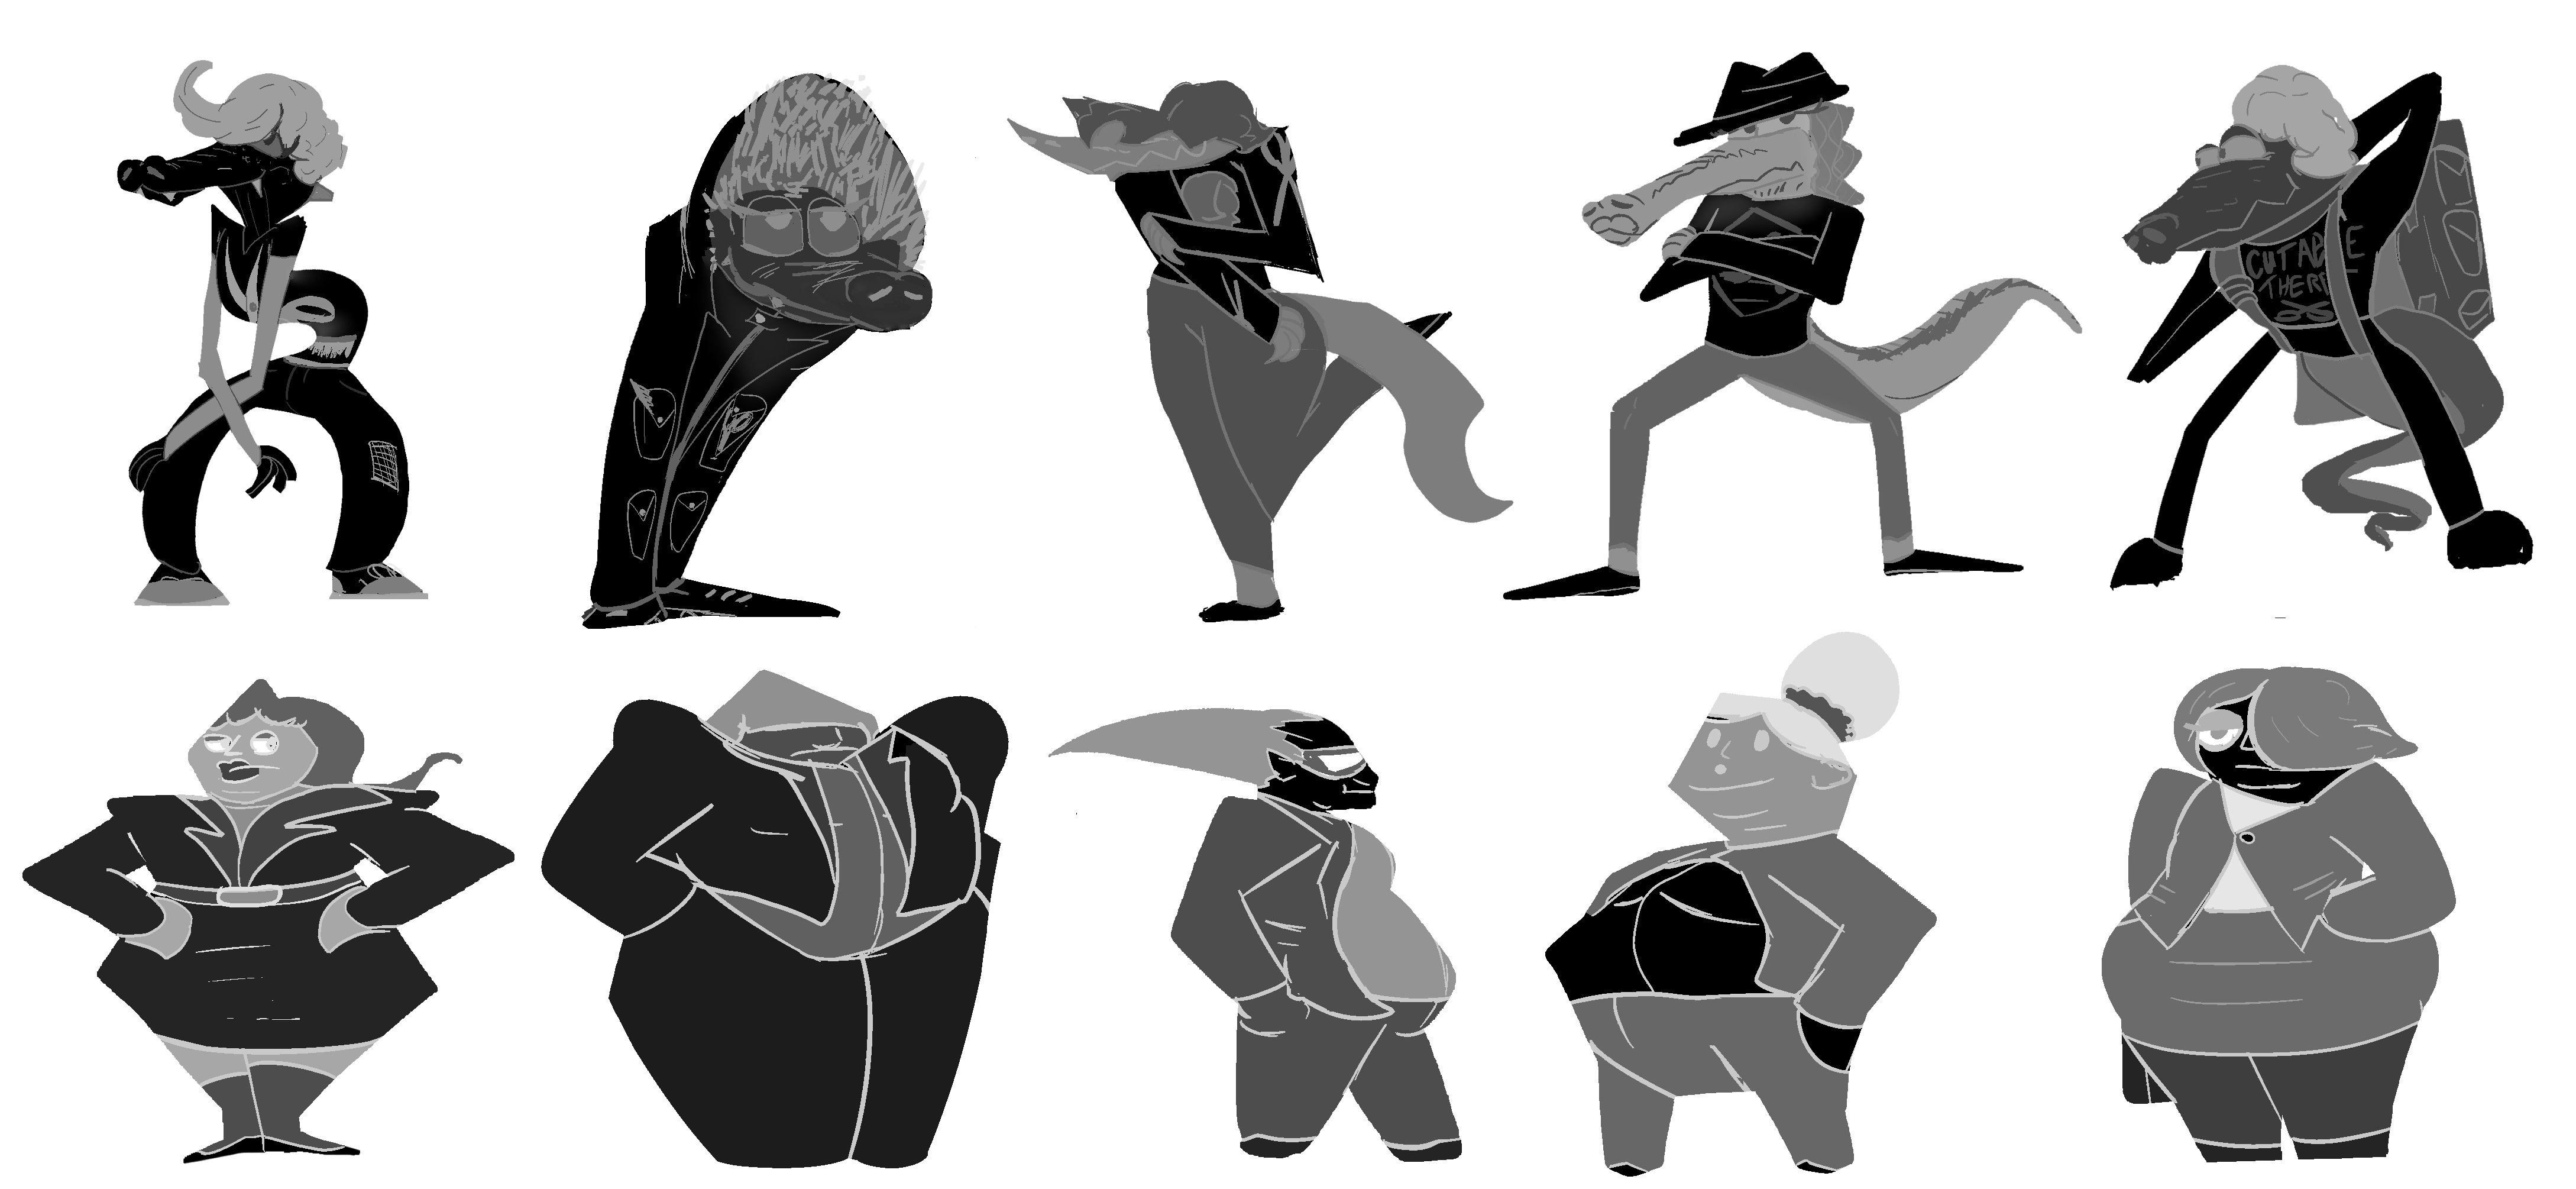 Silhouettes: Finalized Designs